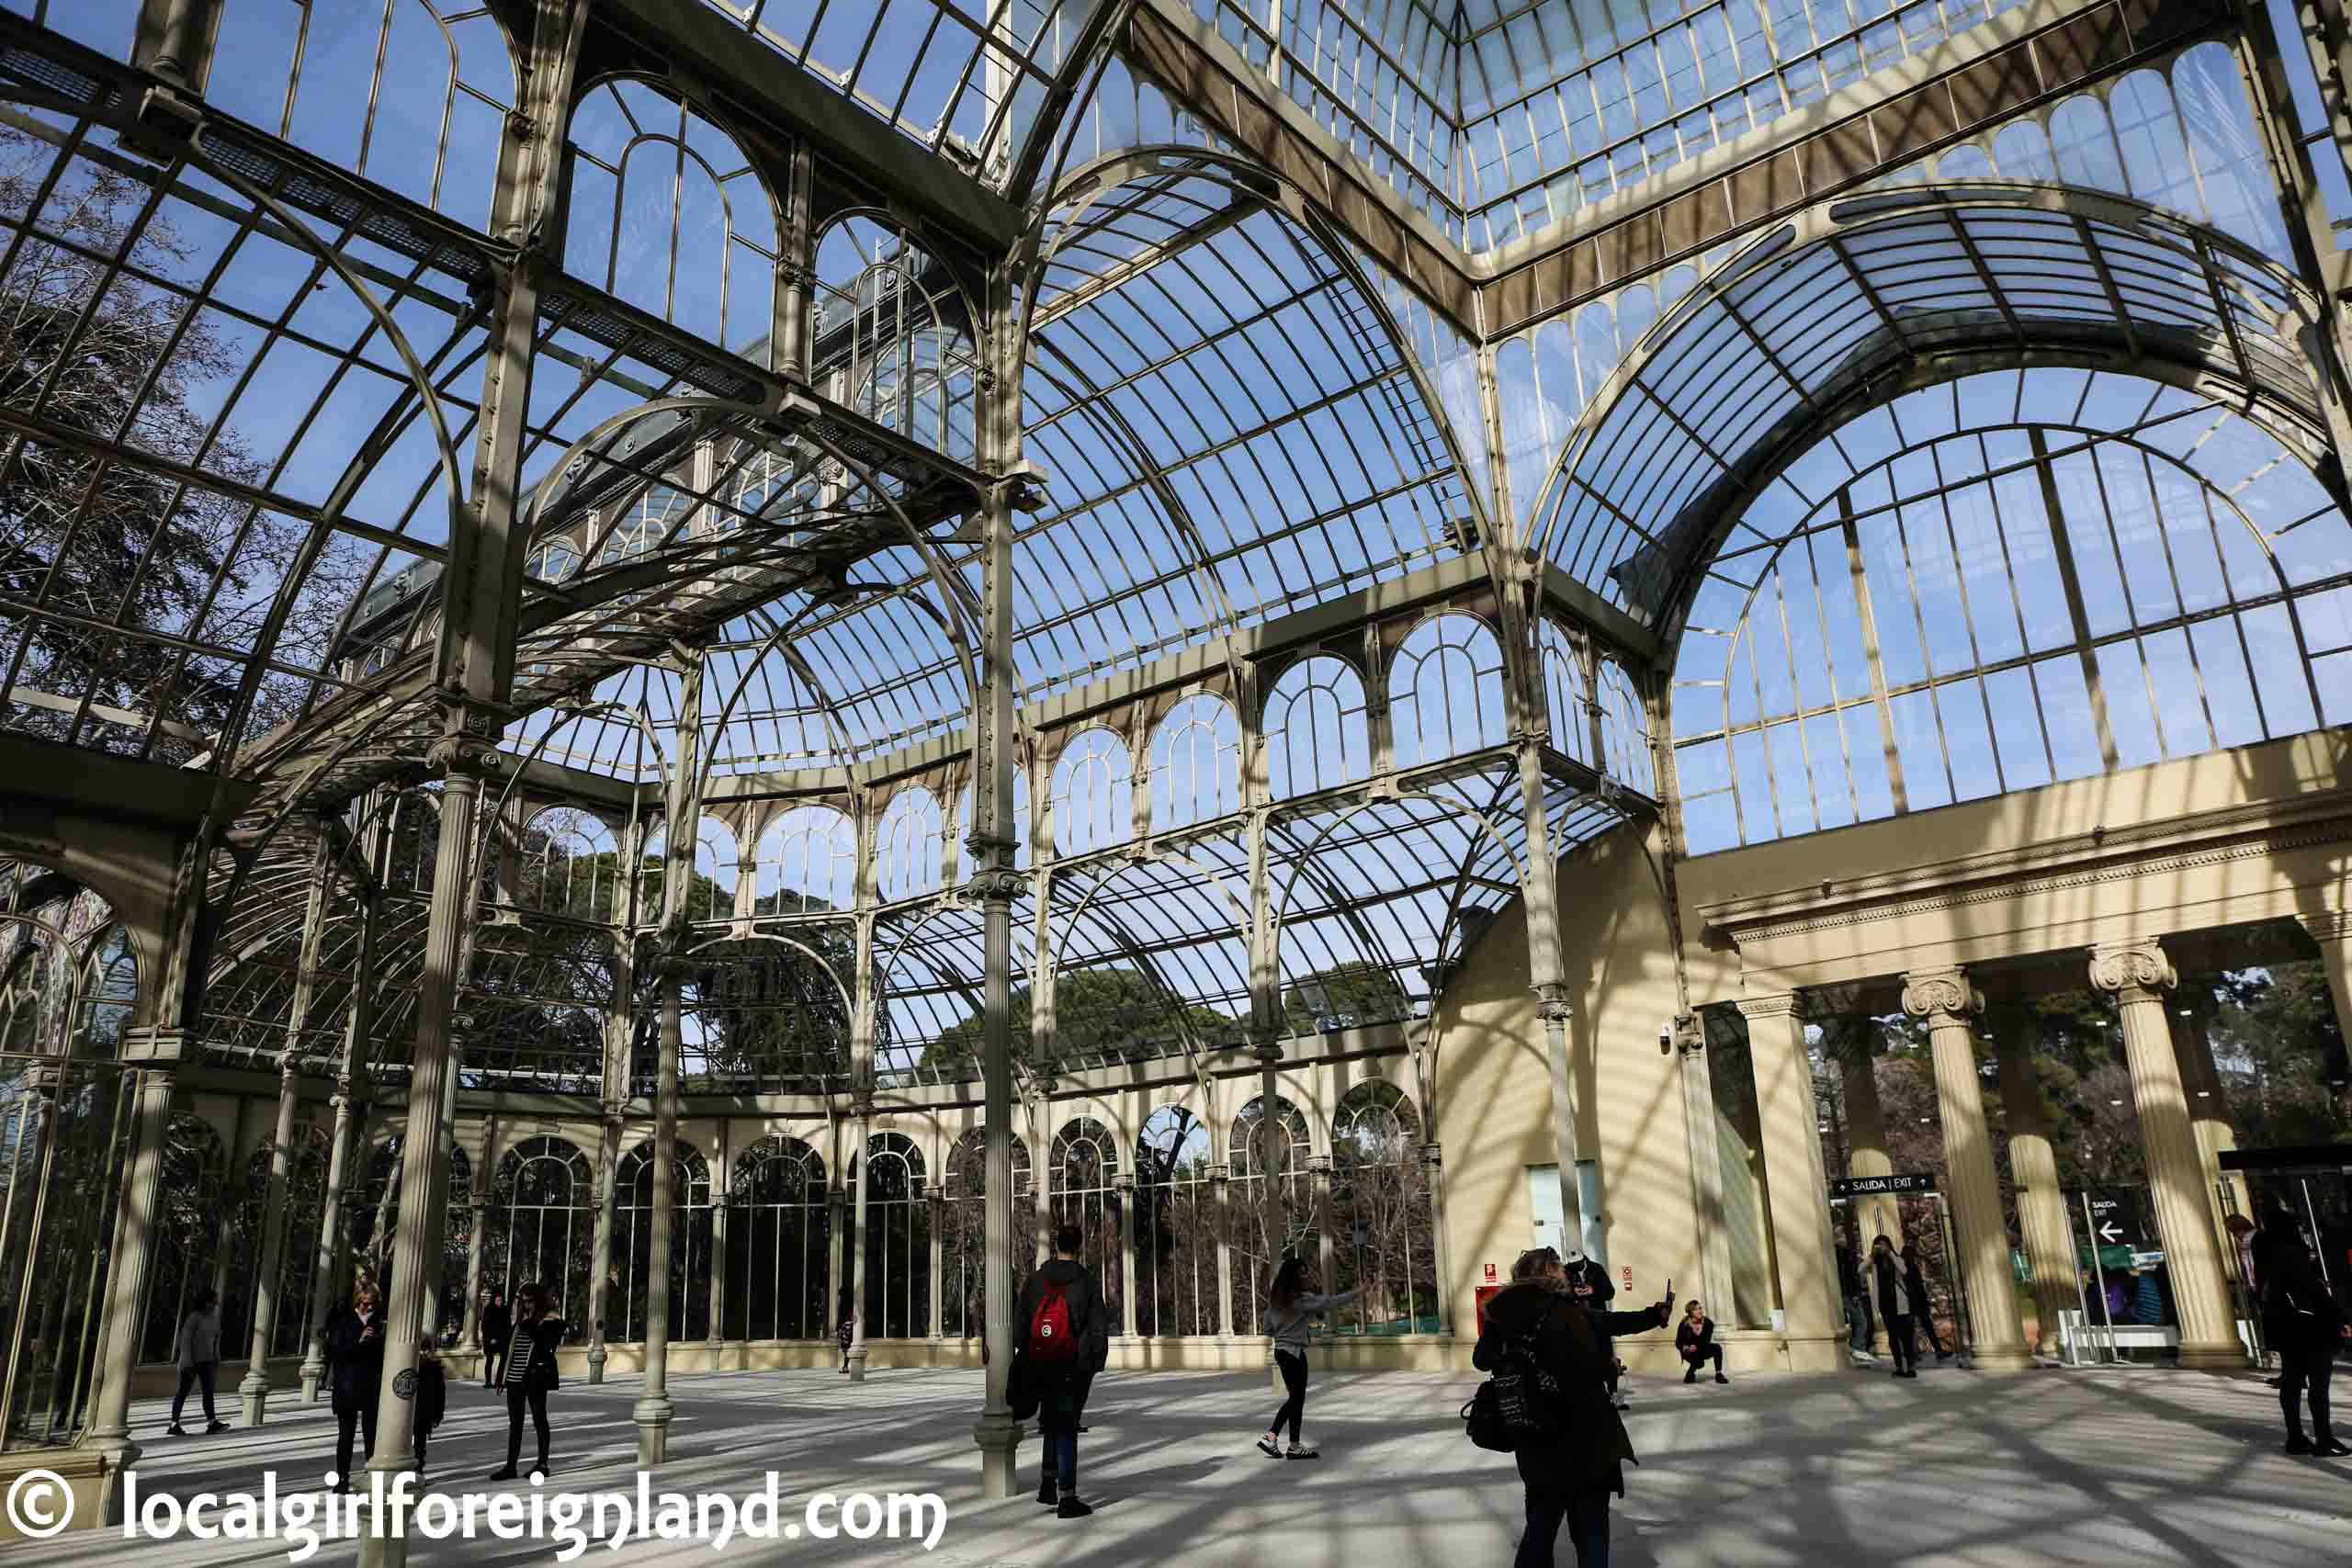 Inside The Glass Palace (Palacio de Cristal), Madrid.